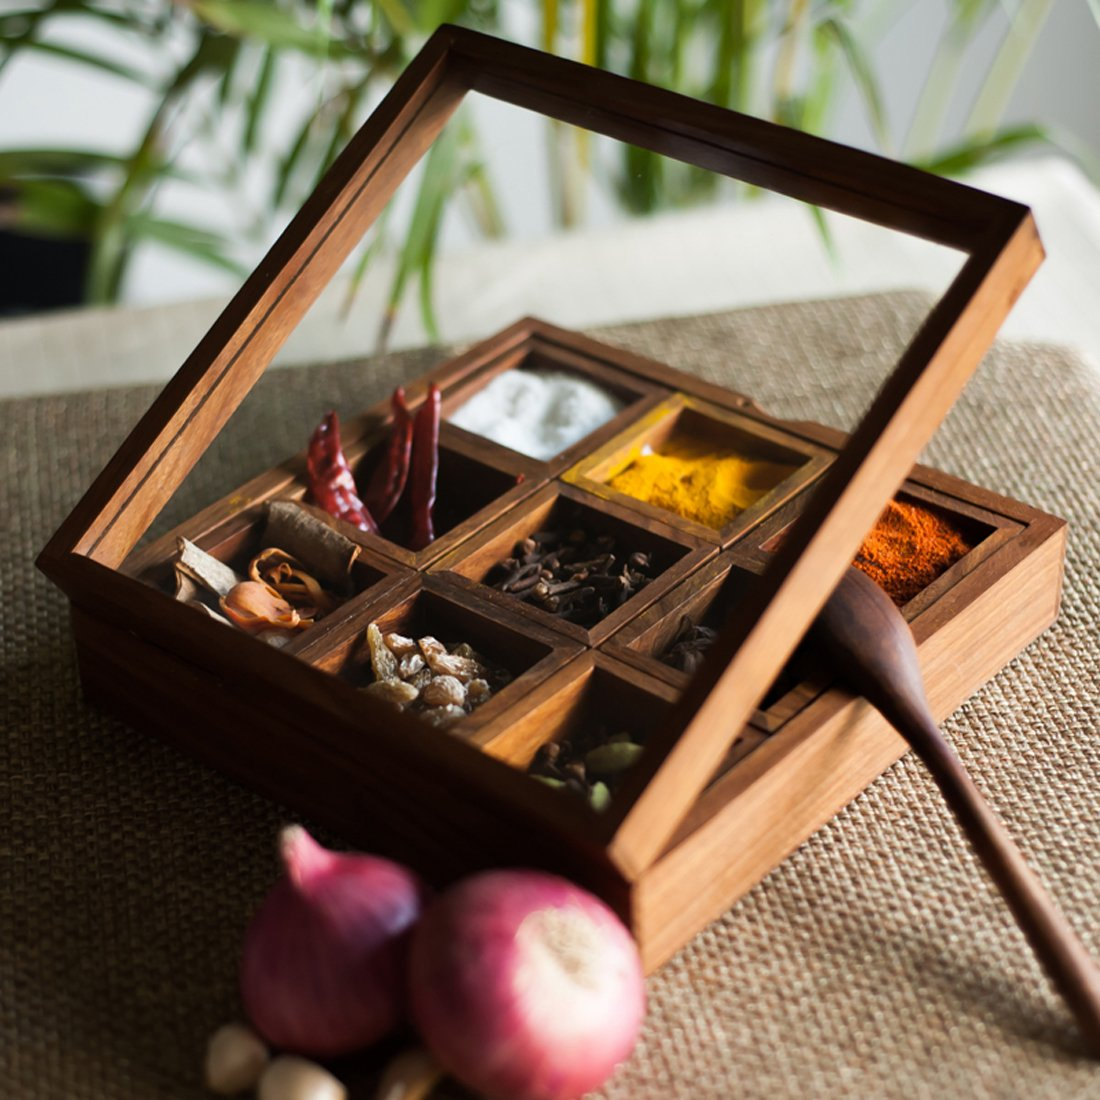 eb17303e1f76 ExclusiveLane Spice Box with Container & Spoon in Sheesham Wood - Spice  Rack Spice Holders Masala Container